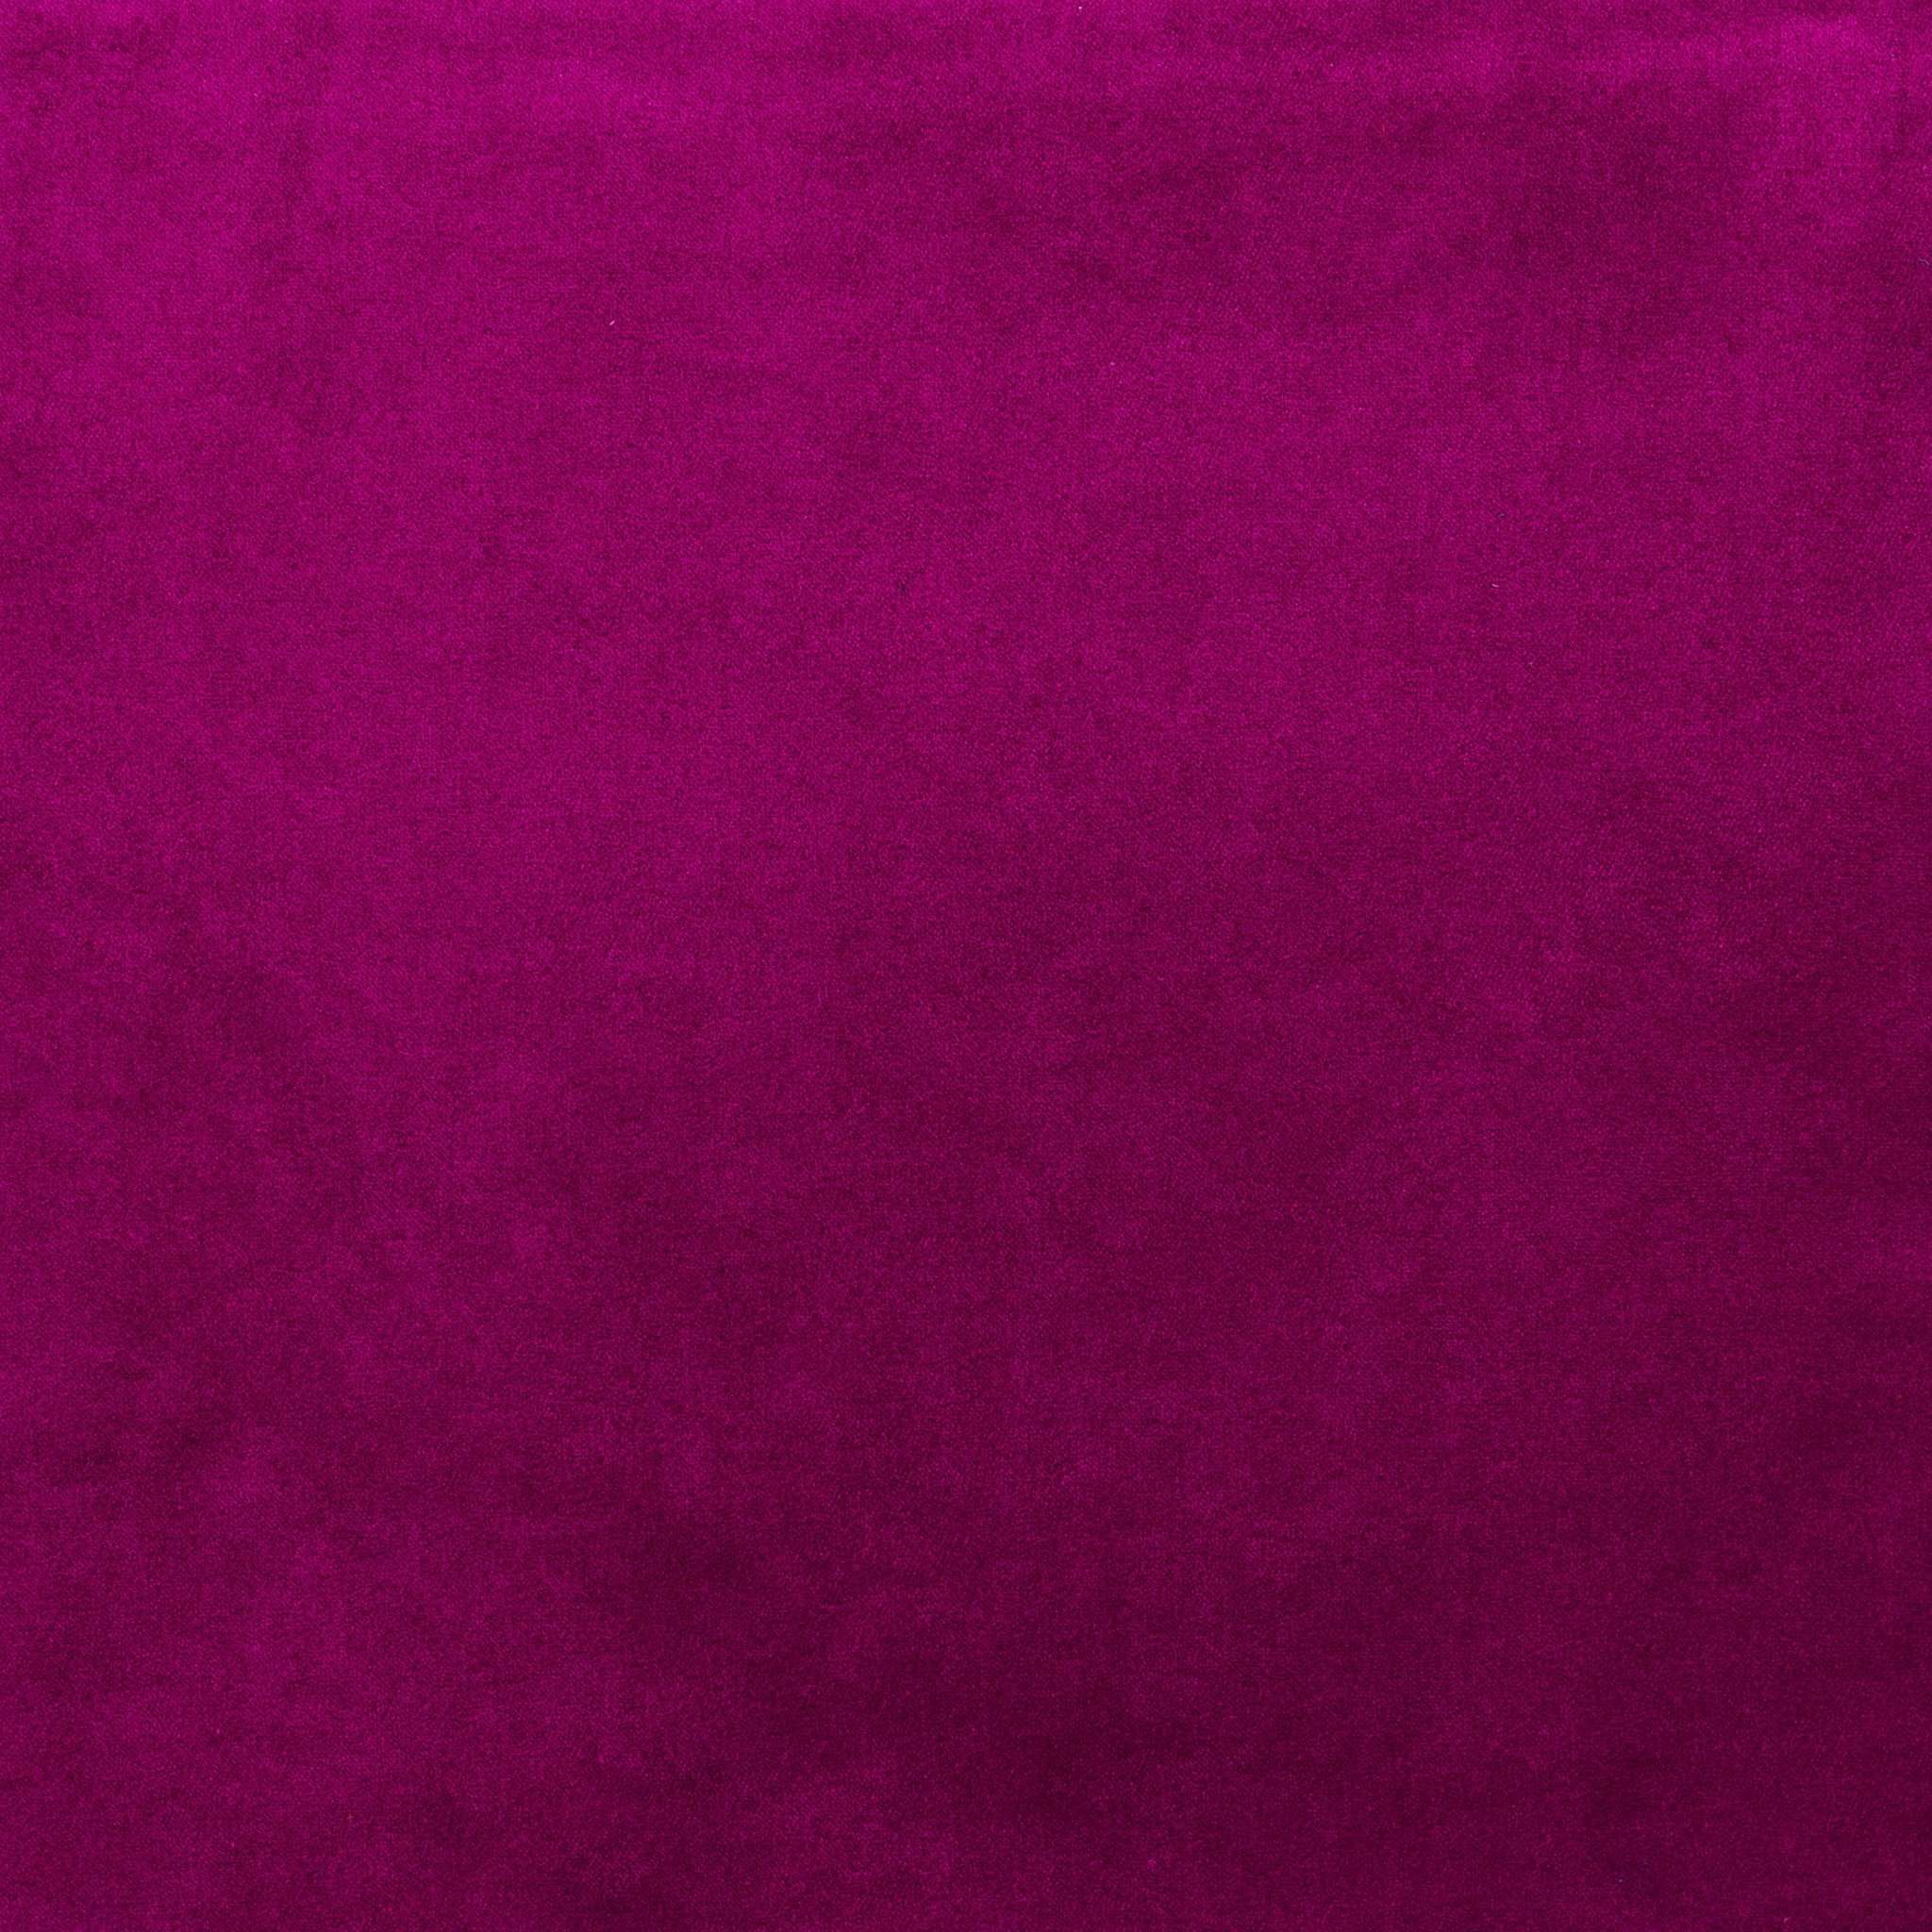 McAlister Textiles Matt Fuchsia Pink Velvet Throw Blanket Throws and Runners